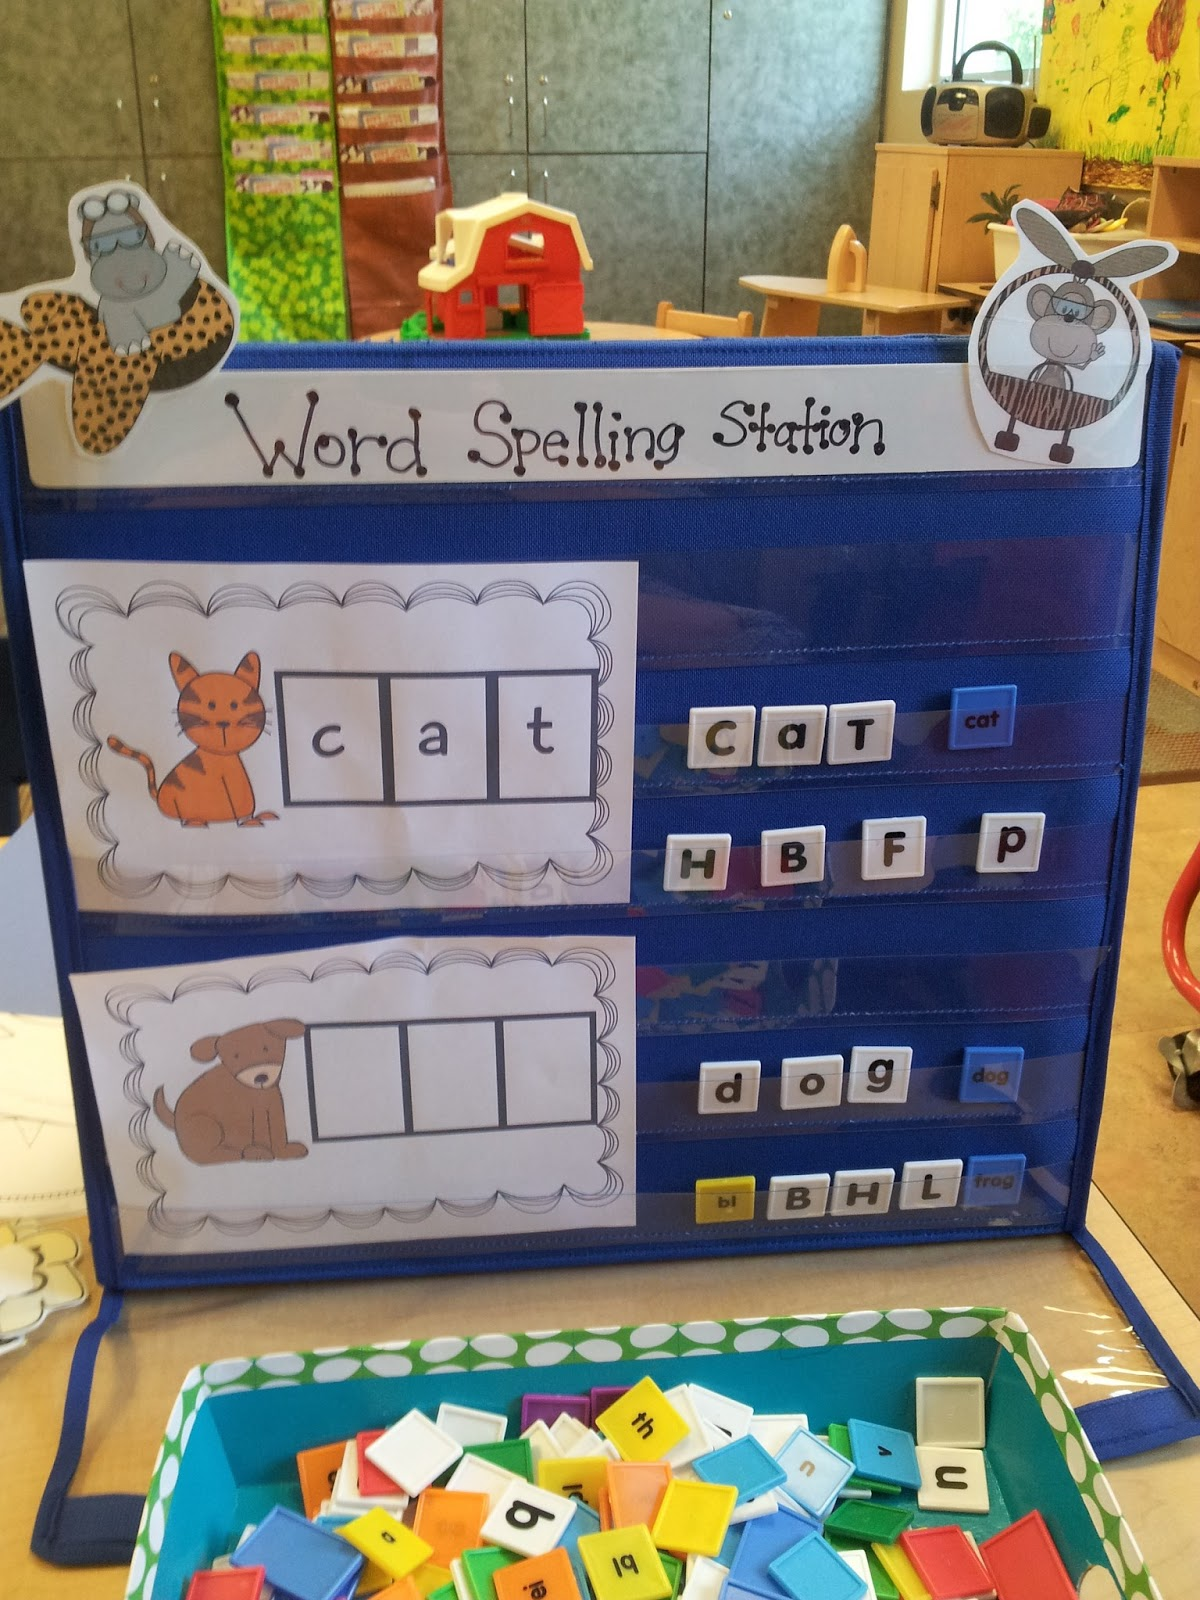 Worksheet Pre K Reading Activities the crazy pre k classroom how to differentiate reading and spelling instruction for young learners